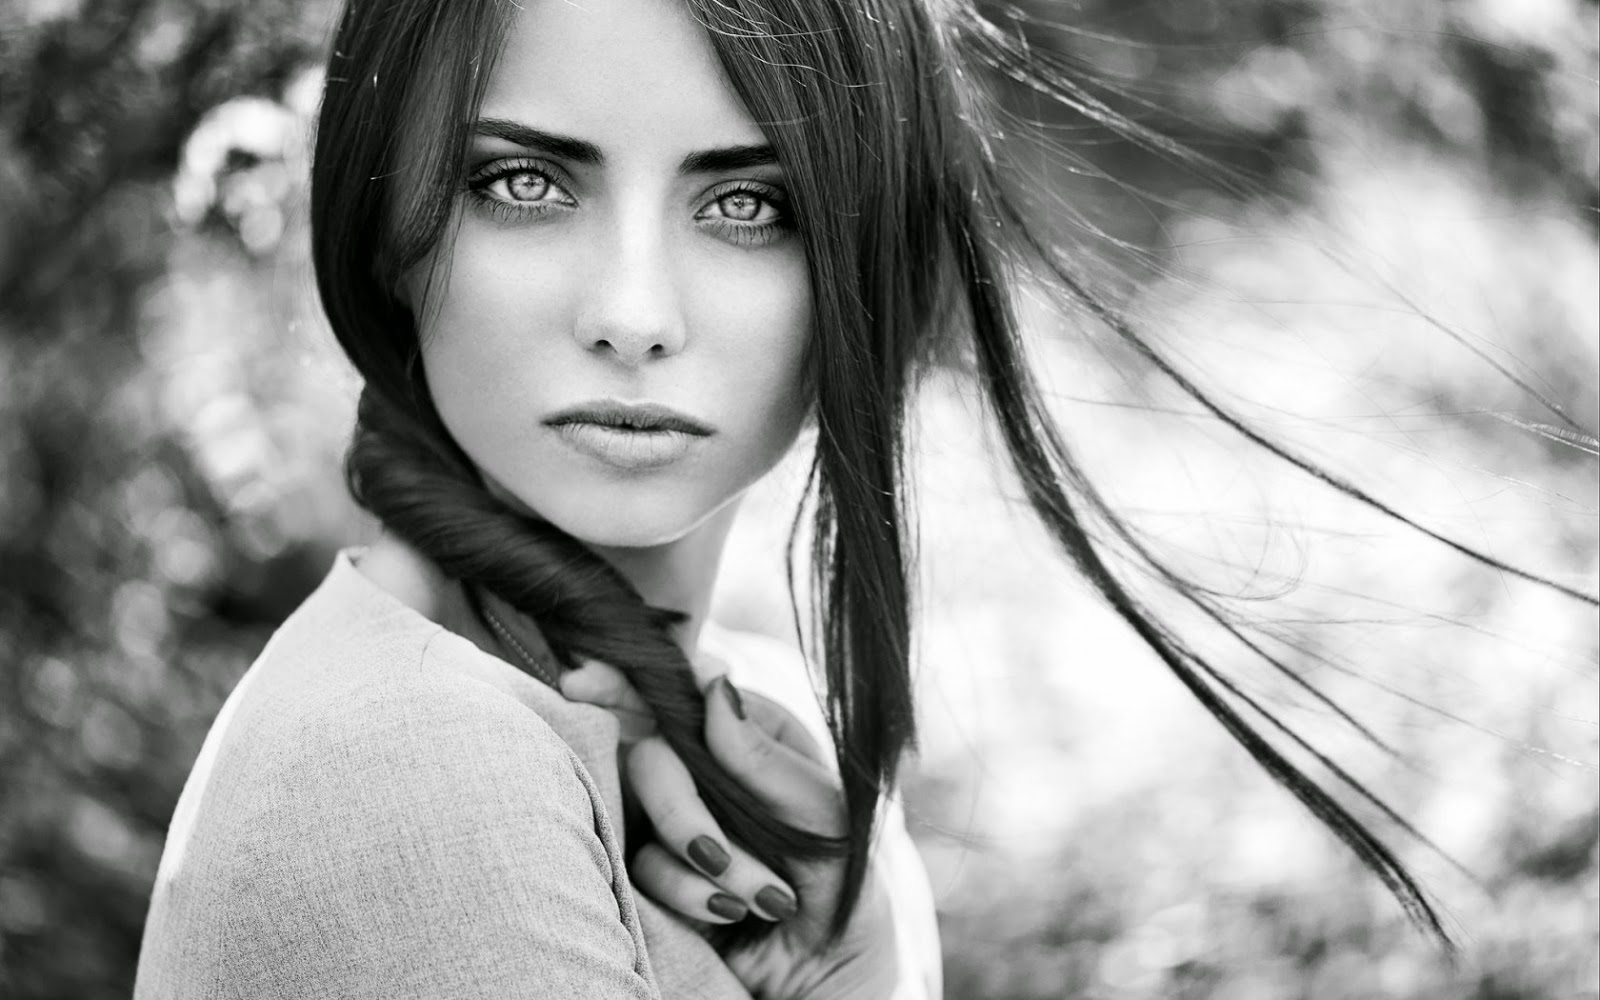 Minimalistic brunette girl look black and white photo enjoy this awesome epic hd wallpaper